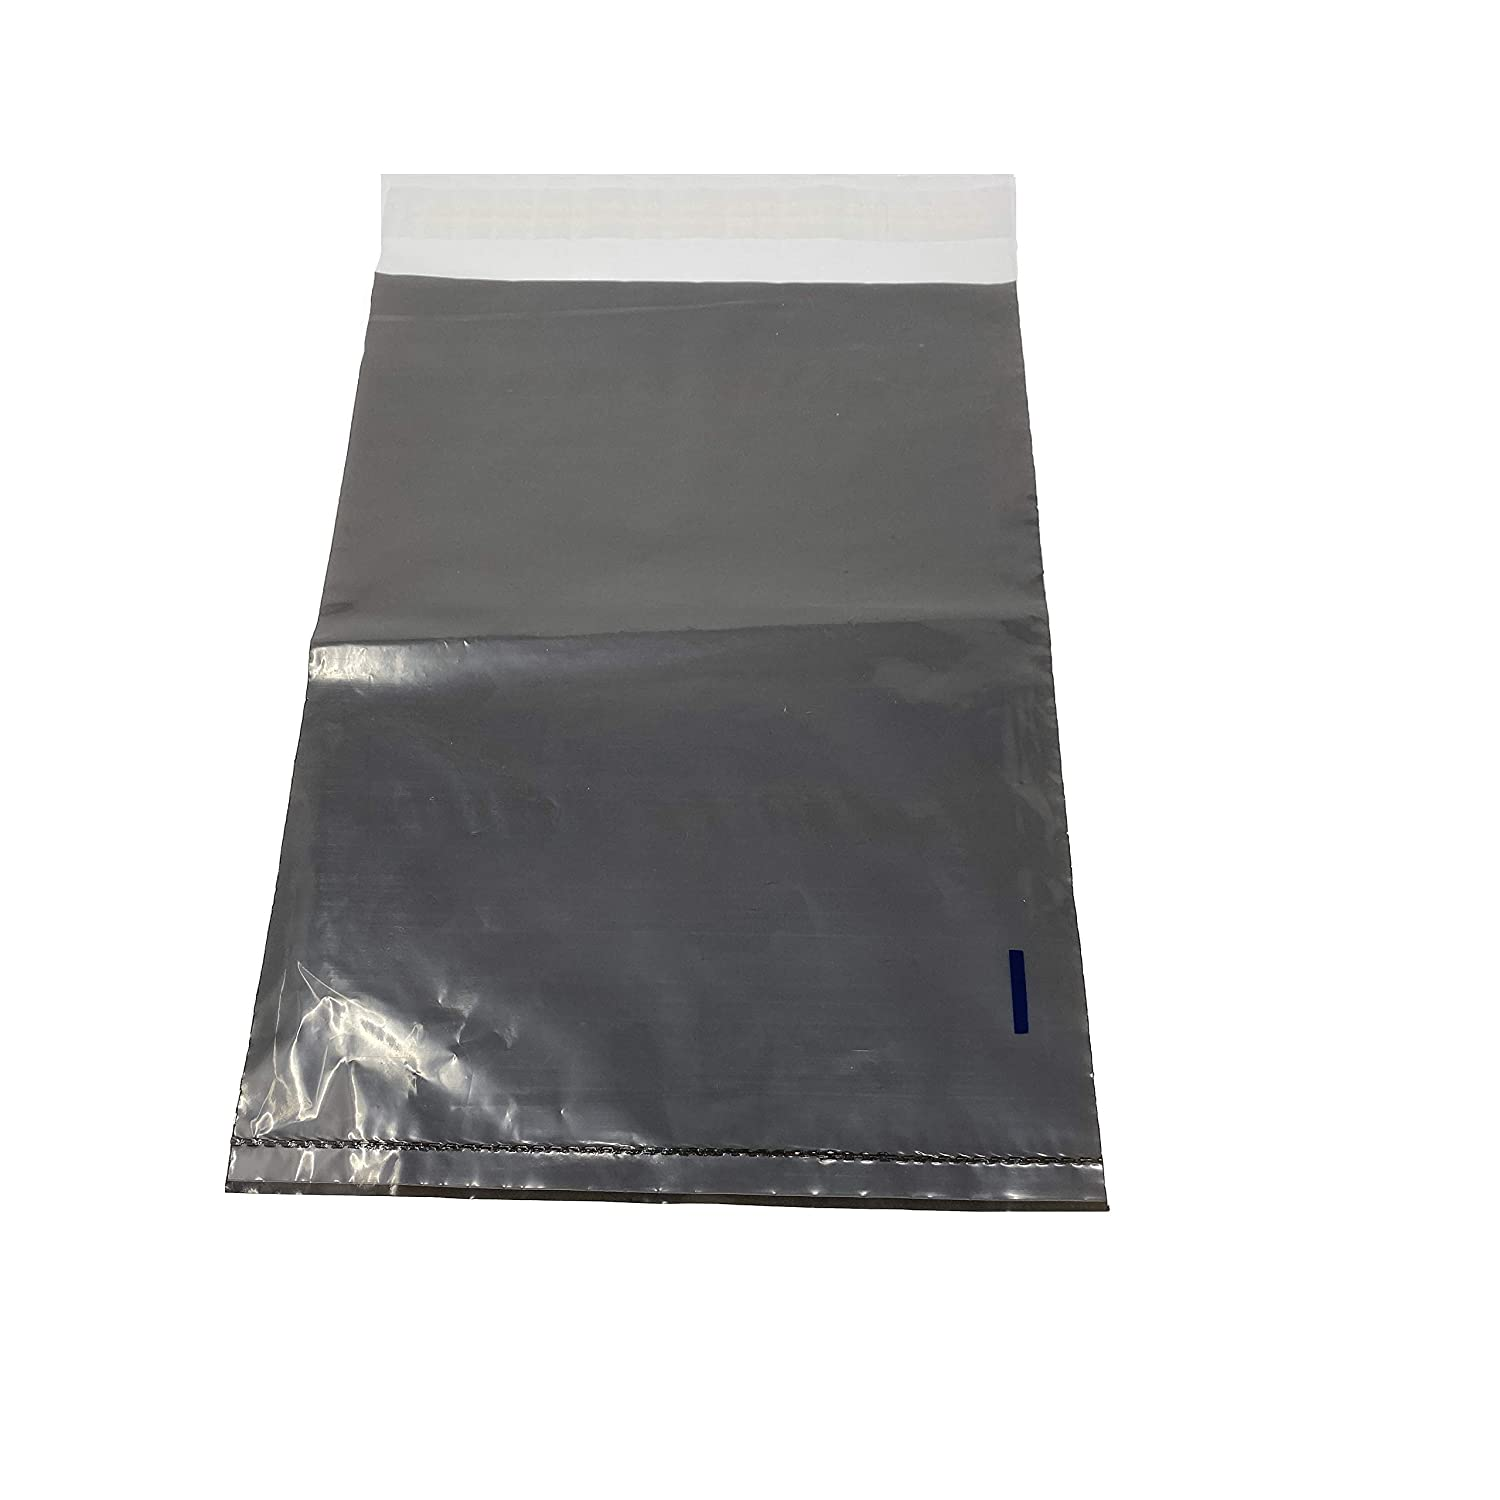 Peel /& Seal Clear View 14.5 x 17 inch 14.5x17 Clear Polybag Mailers Catalog Envelopes 100 Pack